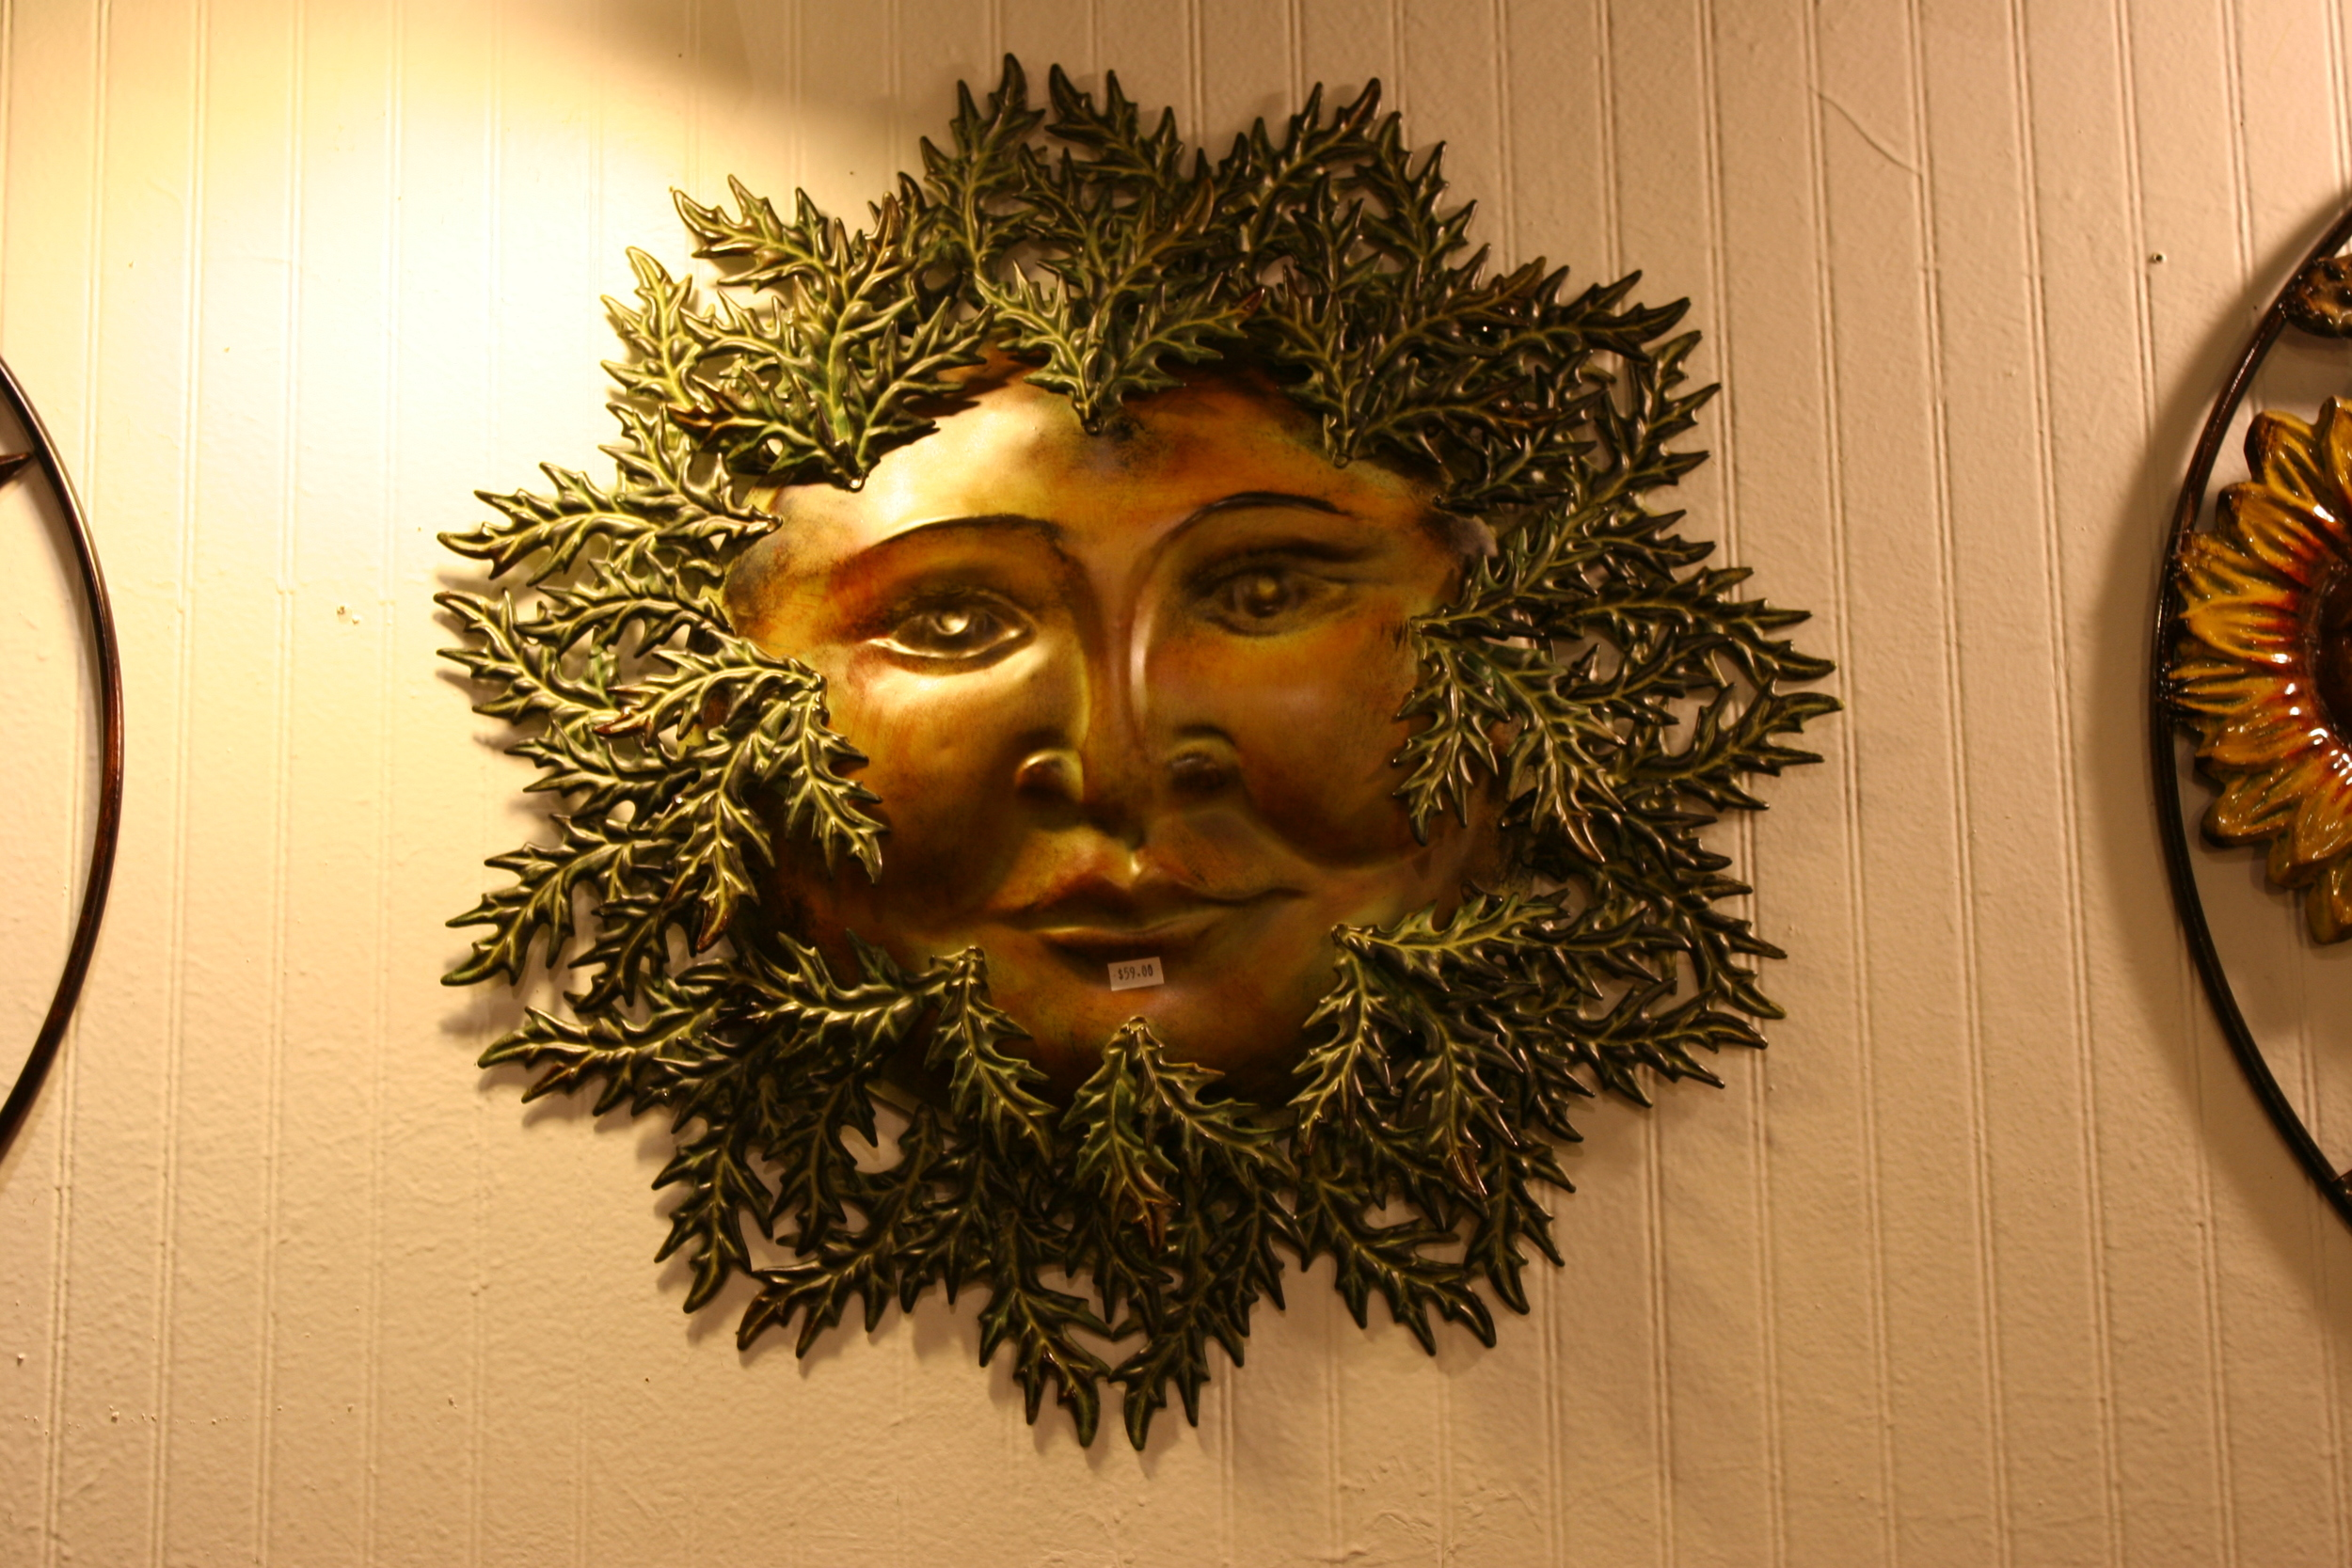 Greenman wall art.JPG